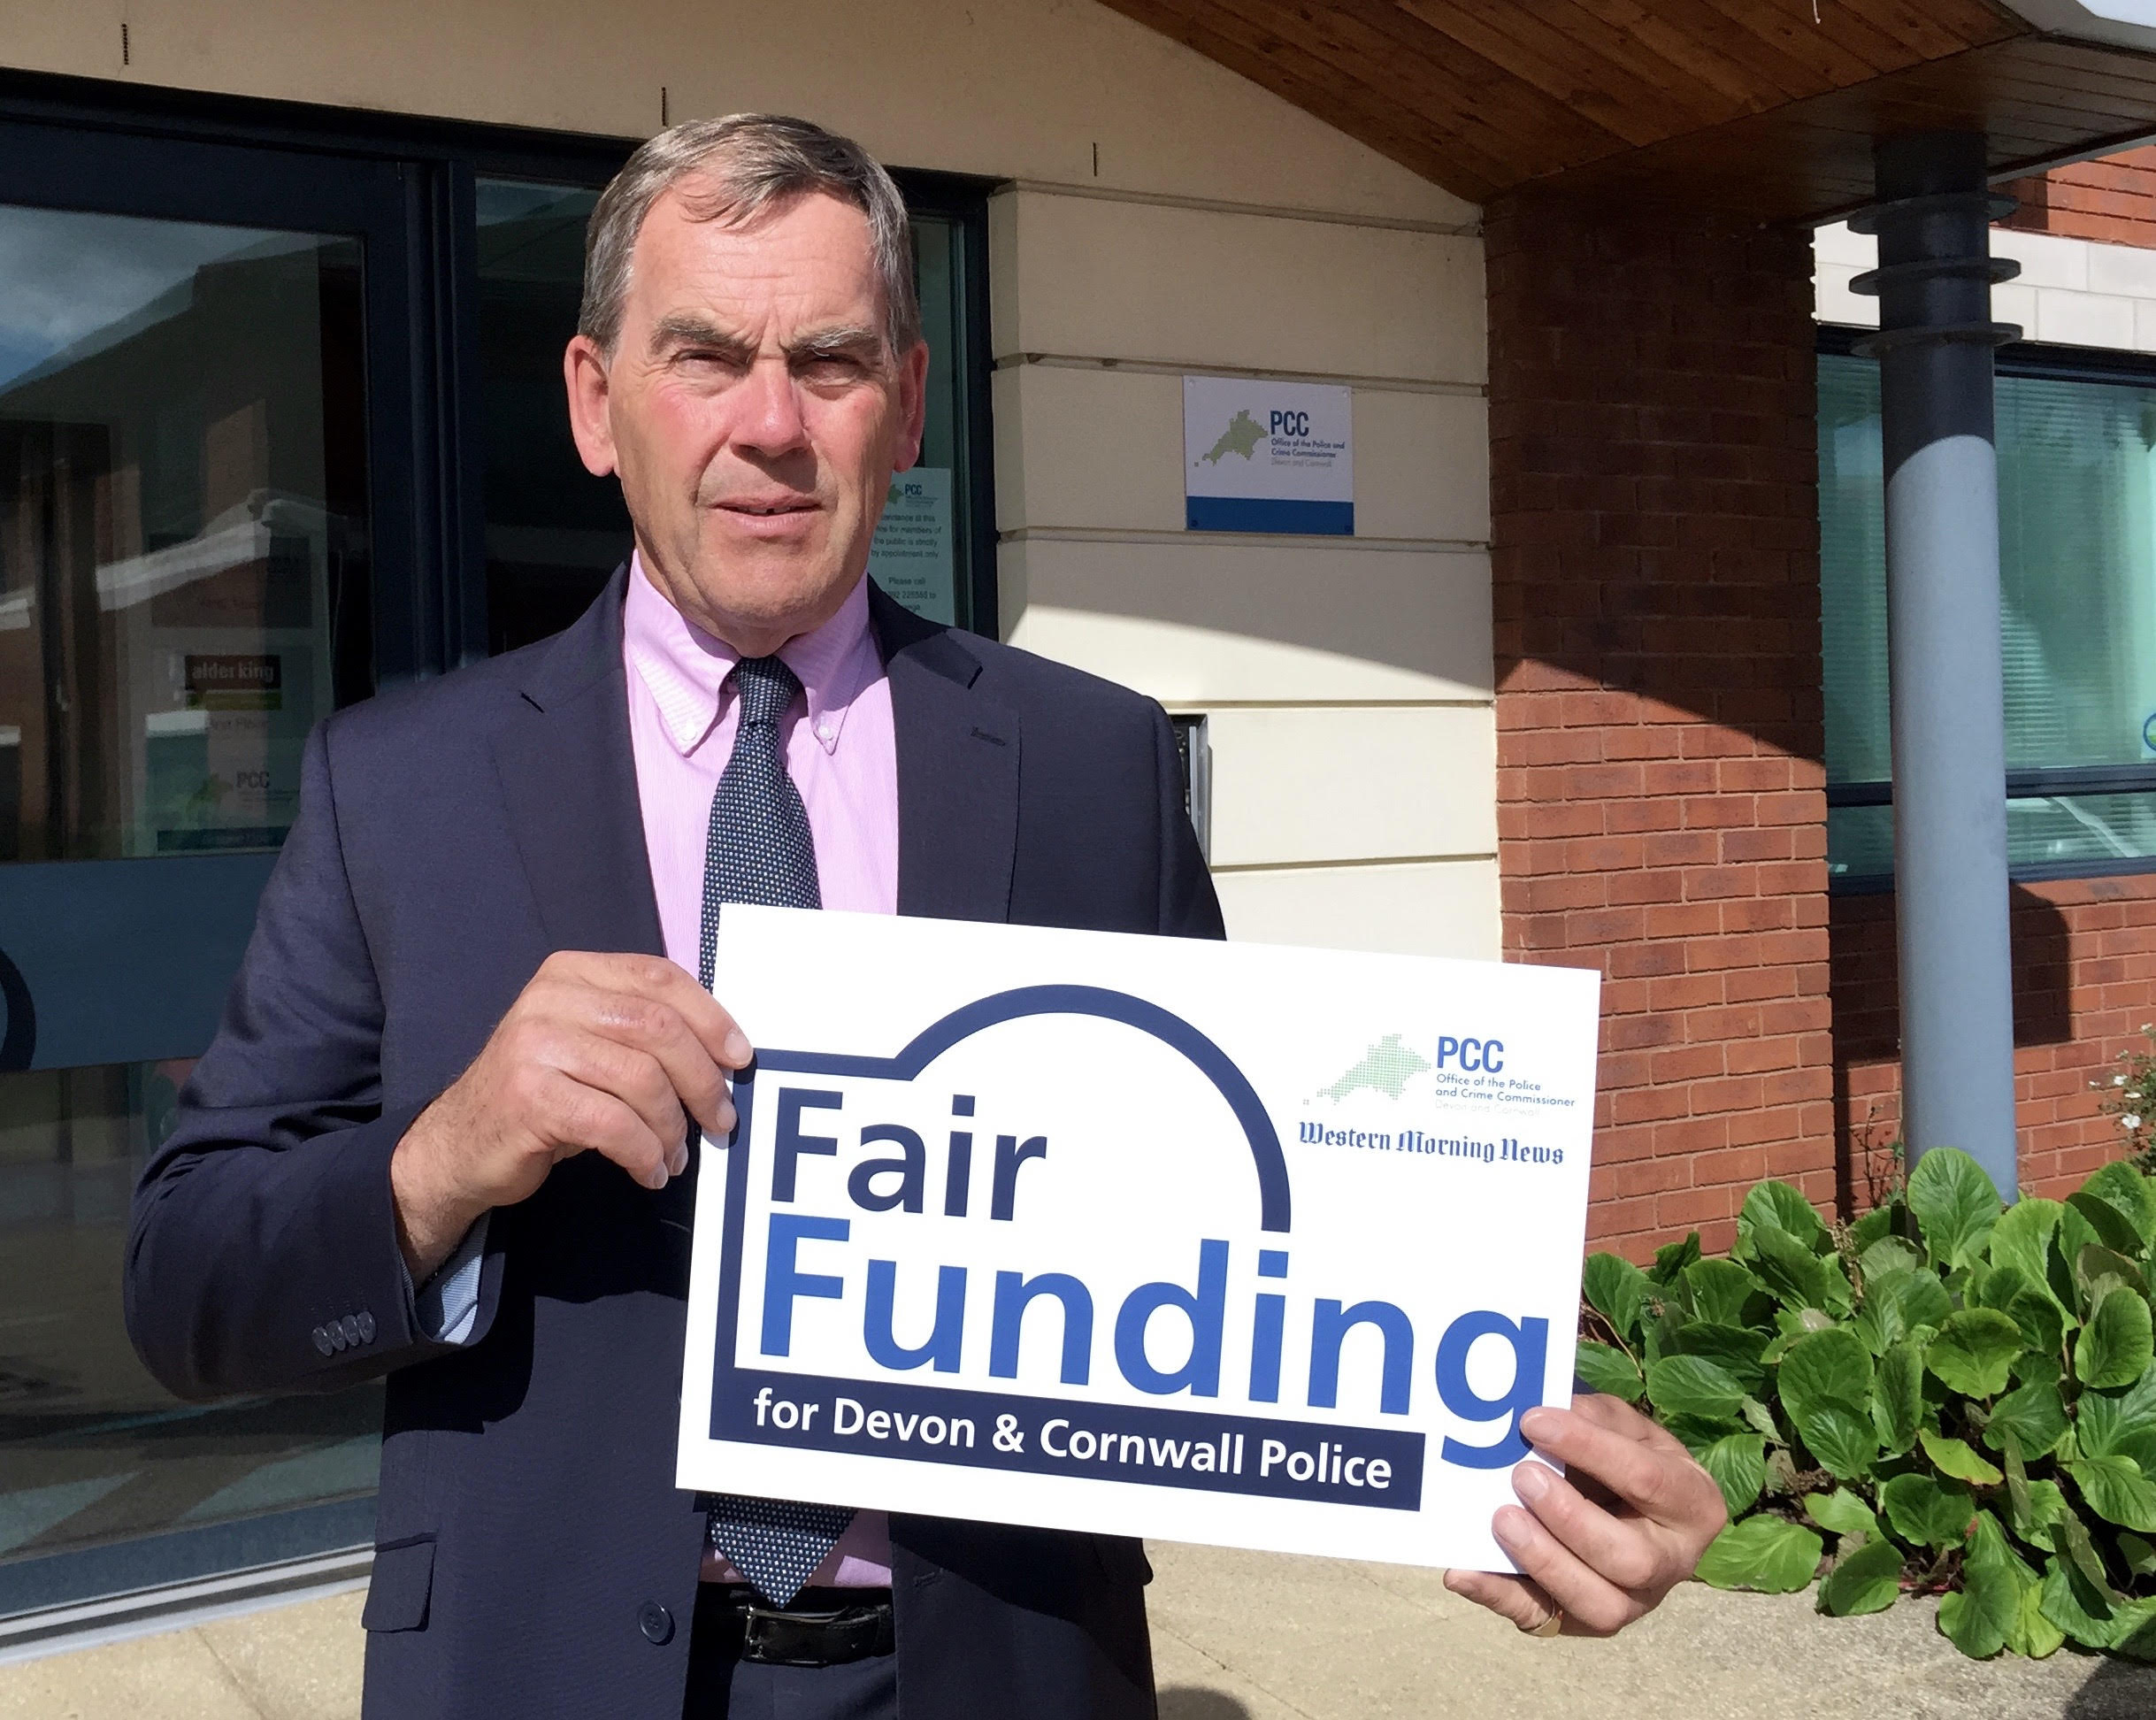 Tony Hogg welcomes Government's police grant settlement